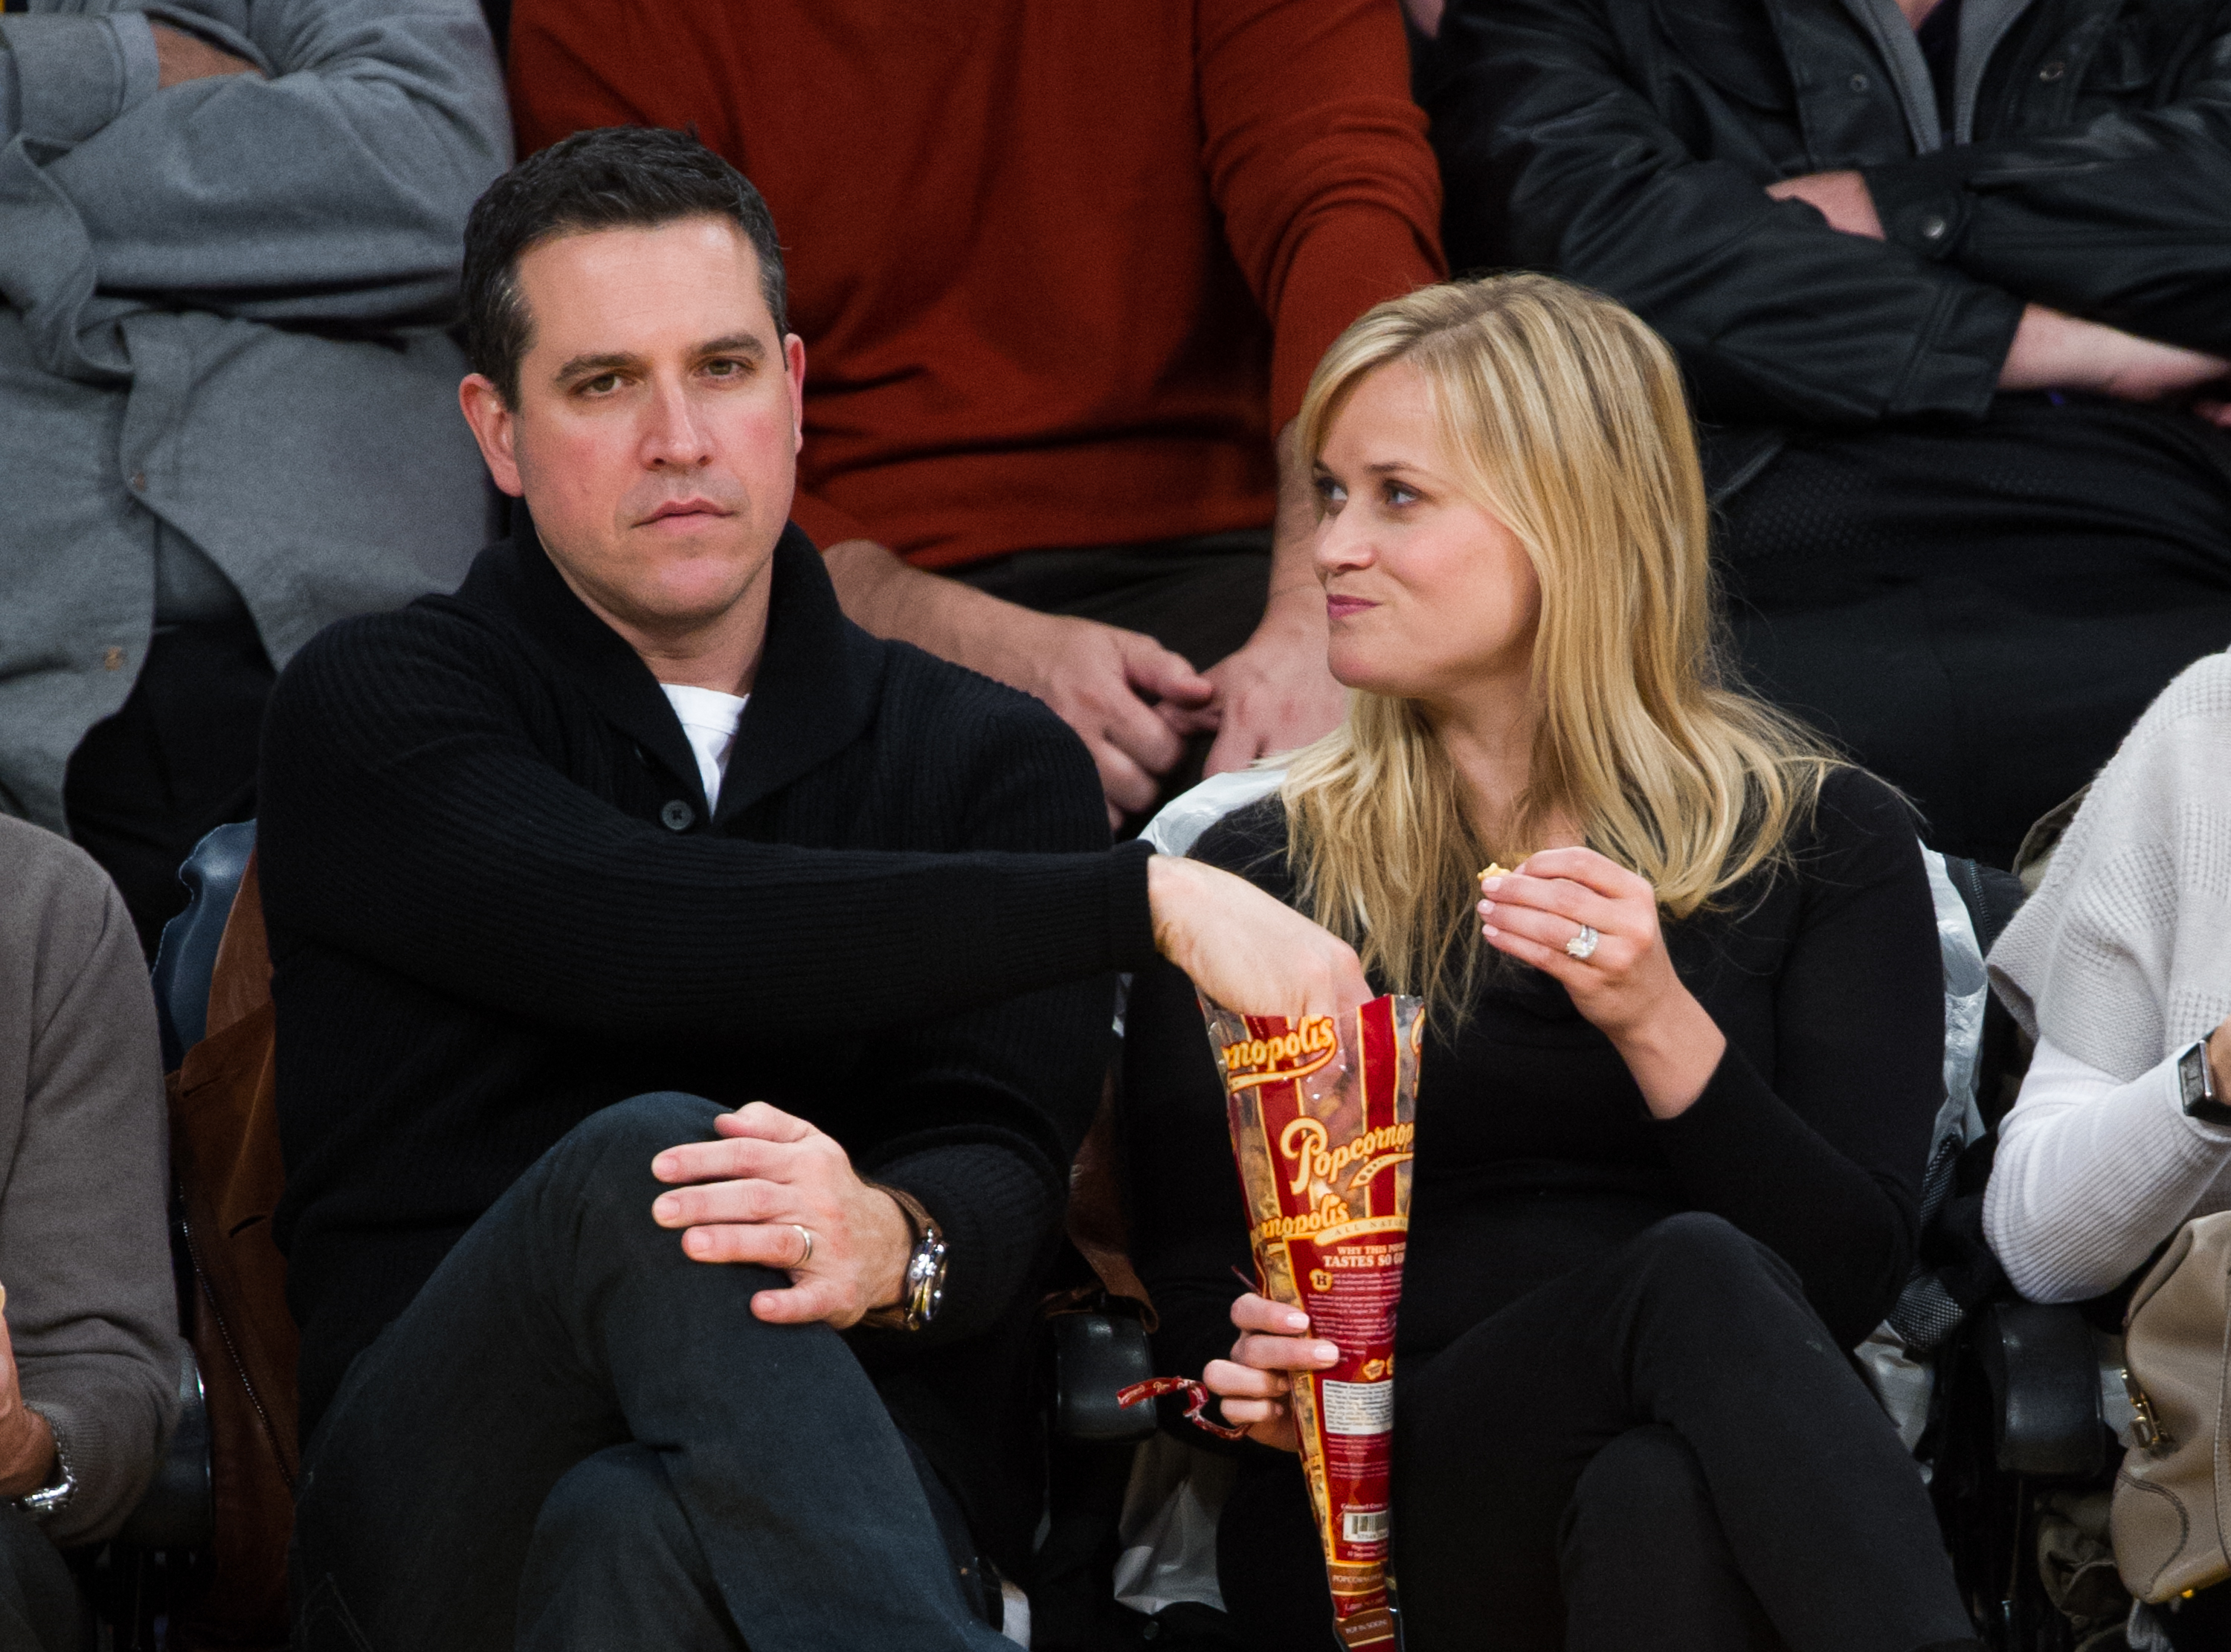 Reese Returns to LA For an Emotional Basketball Night With Her Husband